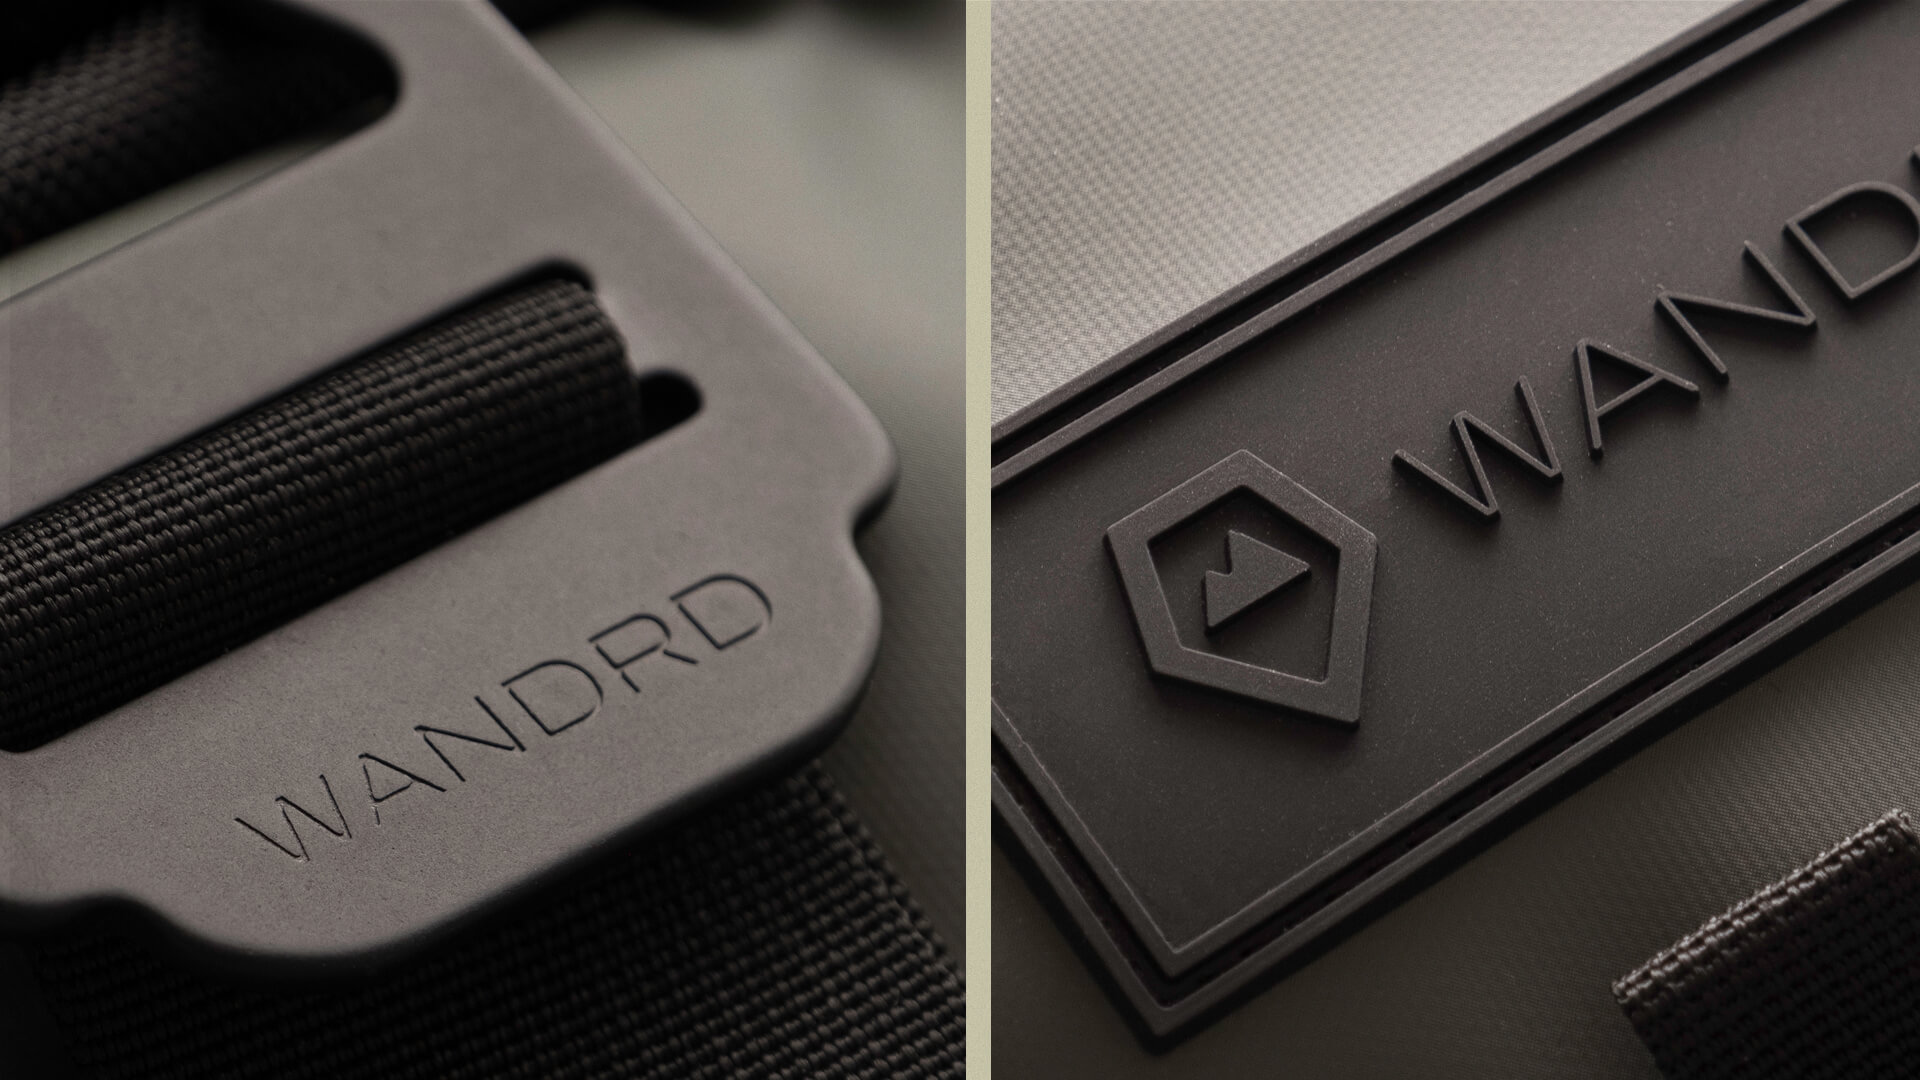 Branding on bag - Wandrd